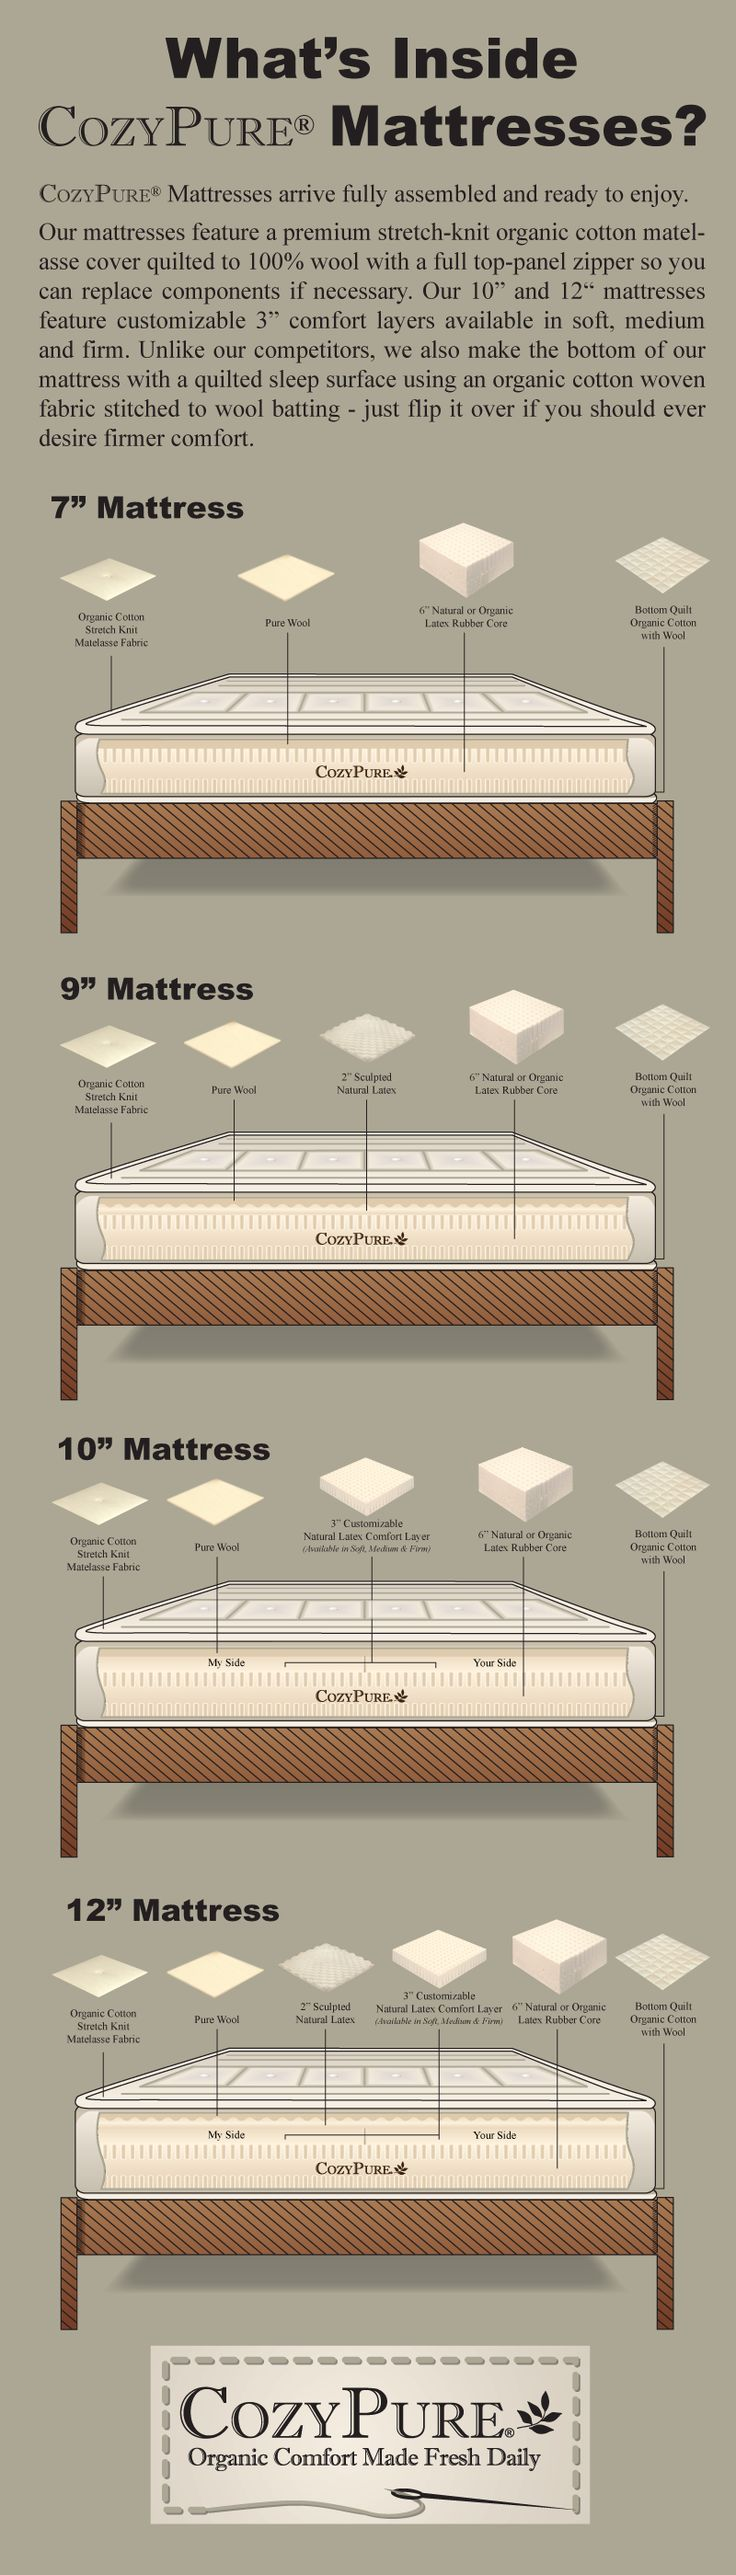 At CozyPure, our mattresses are handcrafted with no foams, fillers or lies. Take a look inside each of our mattresses and decide if you want a sleep experience free of harmful chemicals. #mattress, #sleep, #cozypure, #organic, #healthy